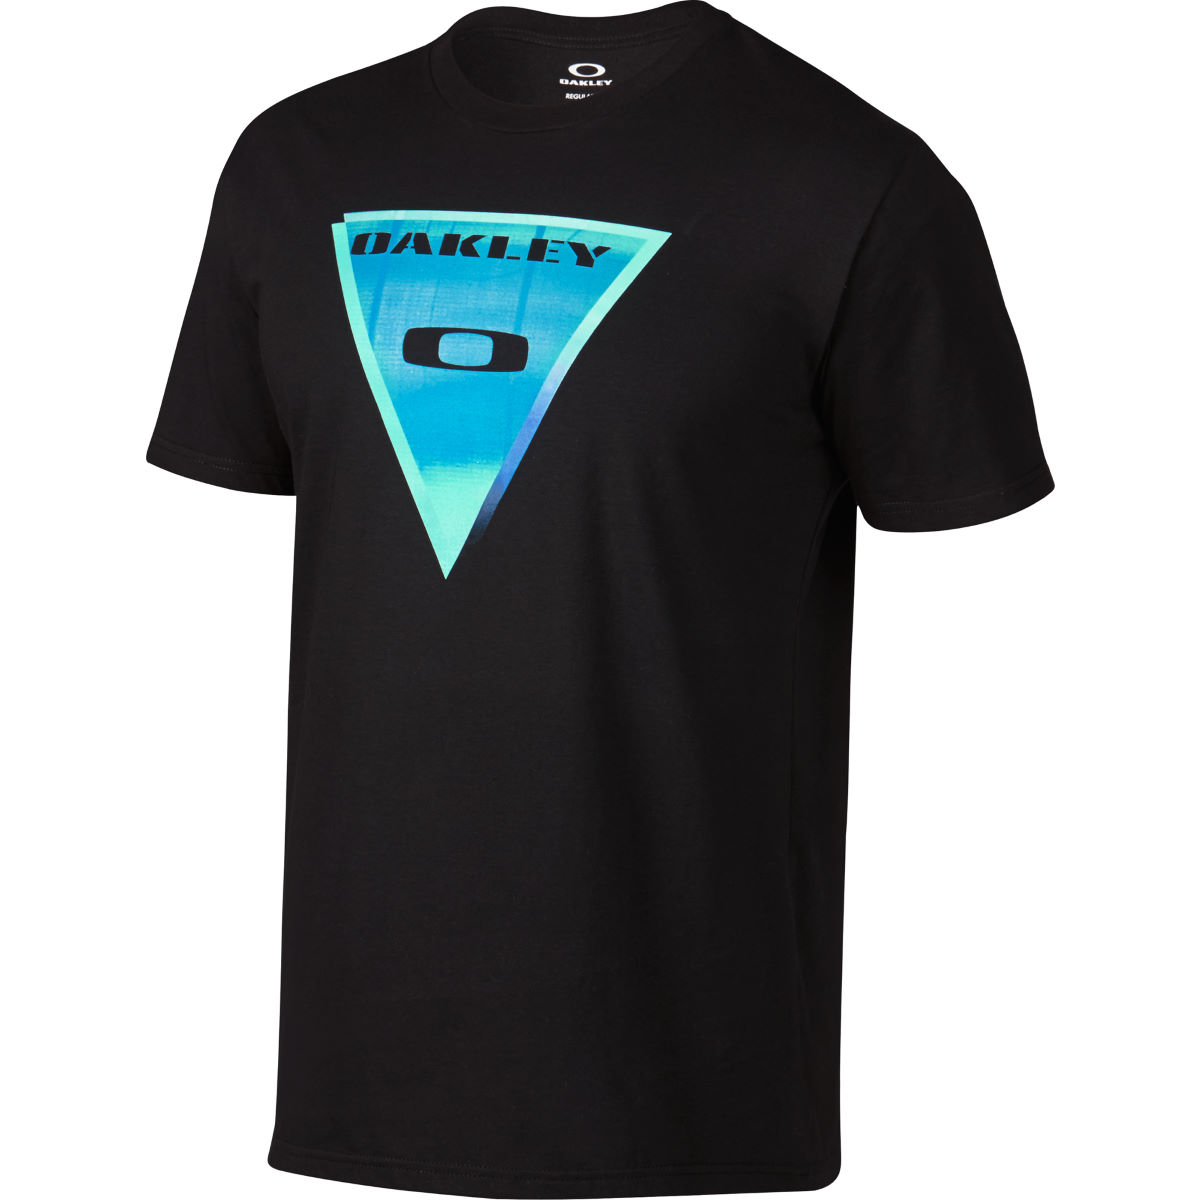 Oakley Spectrum Tee - Large Jet Black | Tees